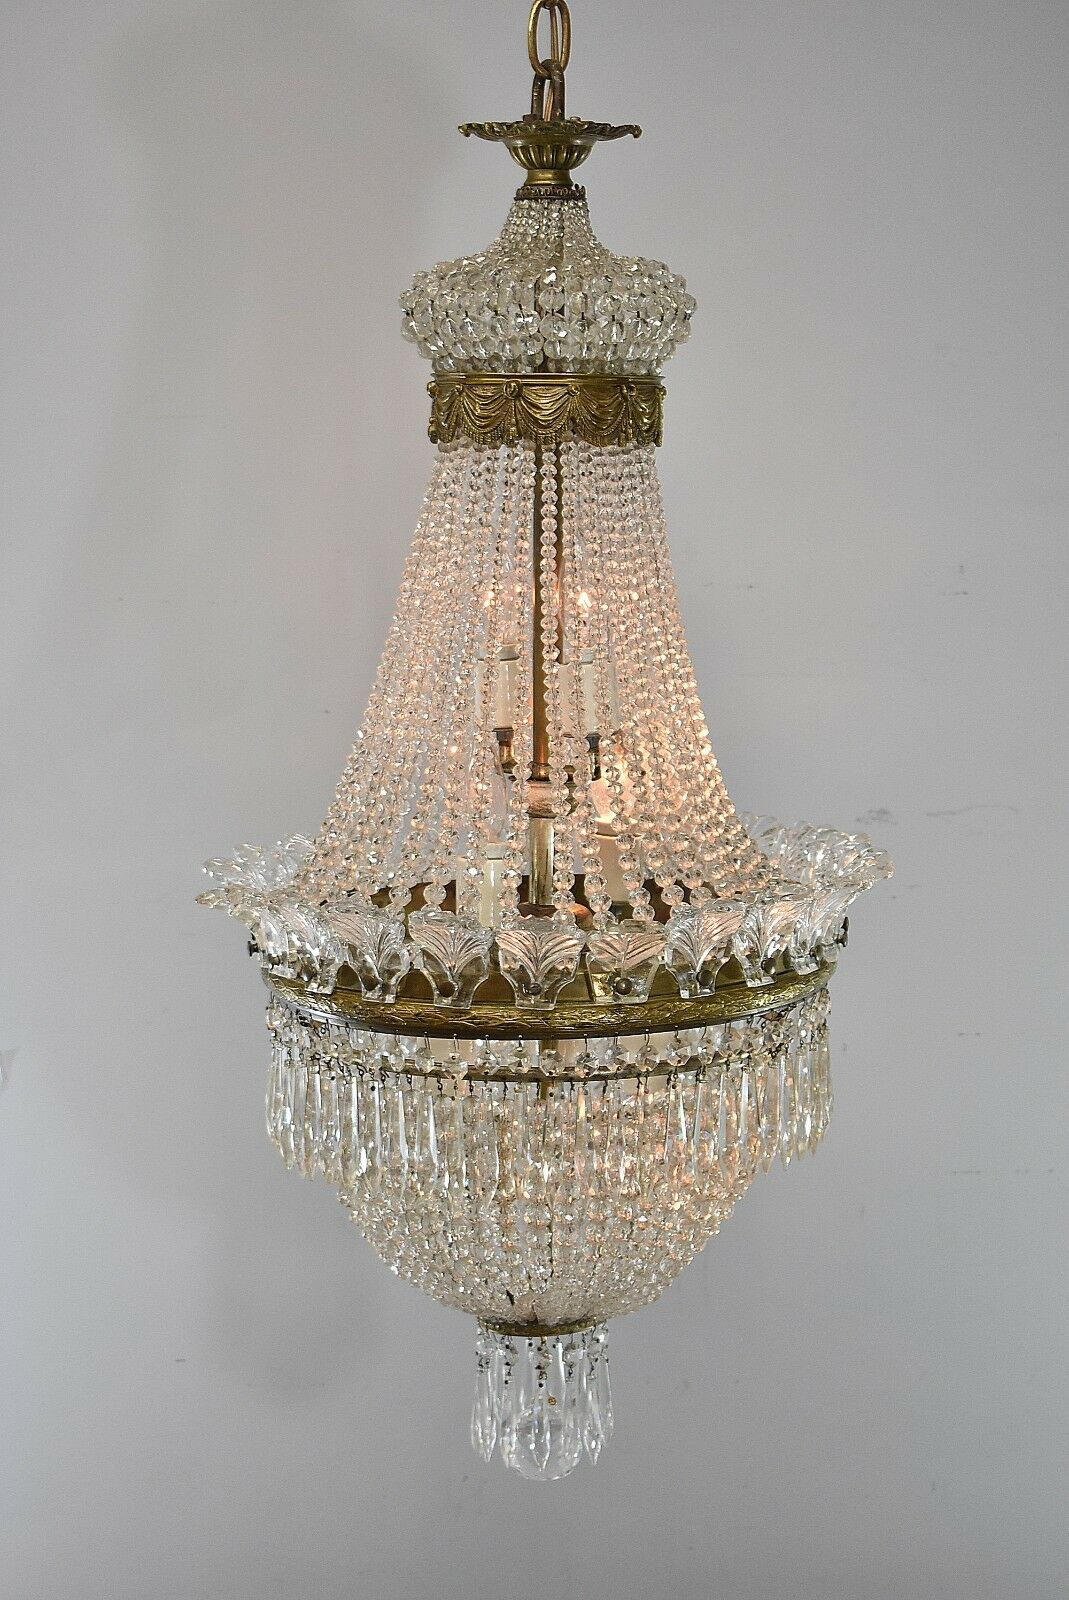 Antique-French-Style-Crystal-Chandelier-Light-Fixture-with- - Antique French Style Crystal Chandelier Light Fixture With Bronze